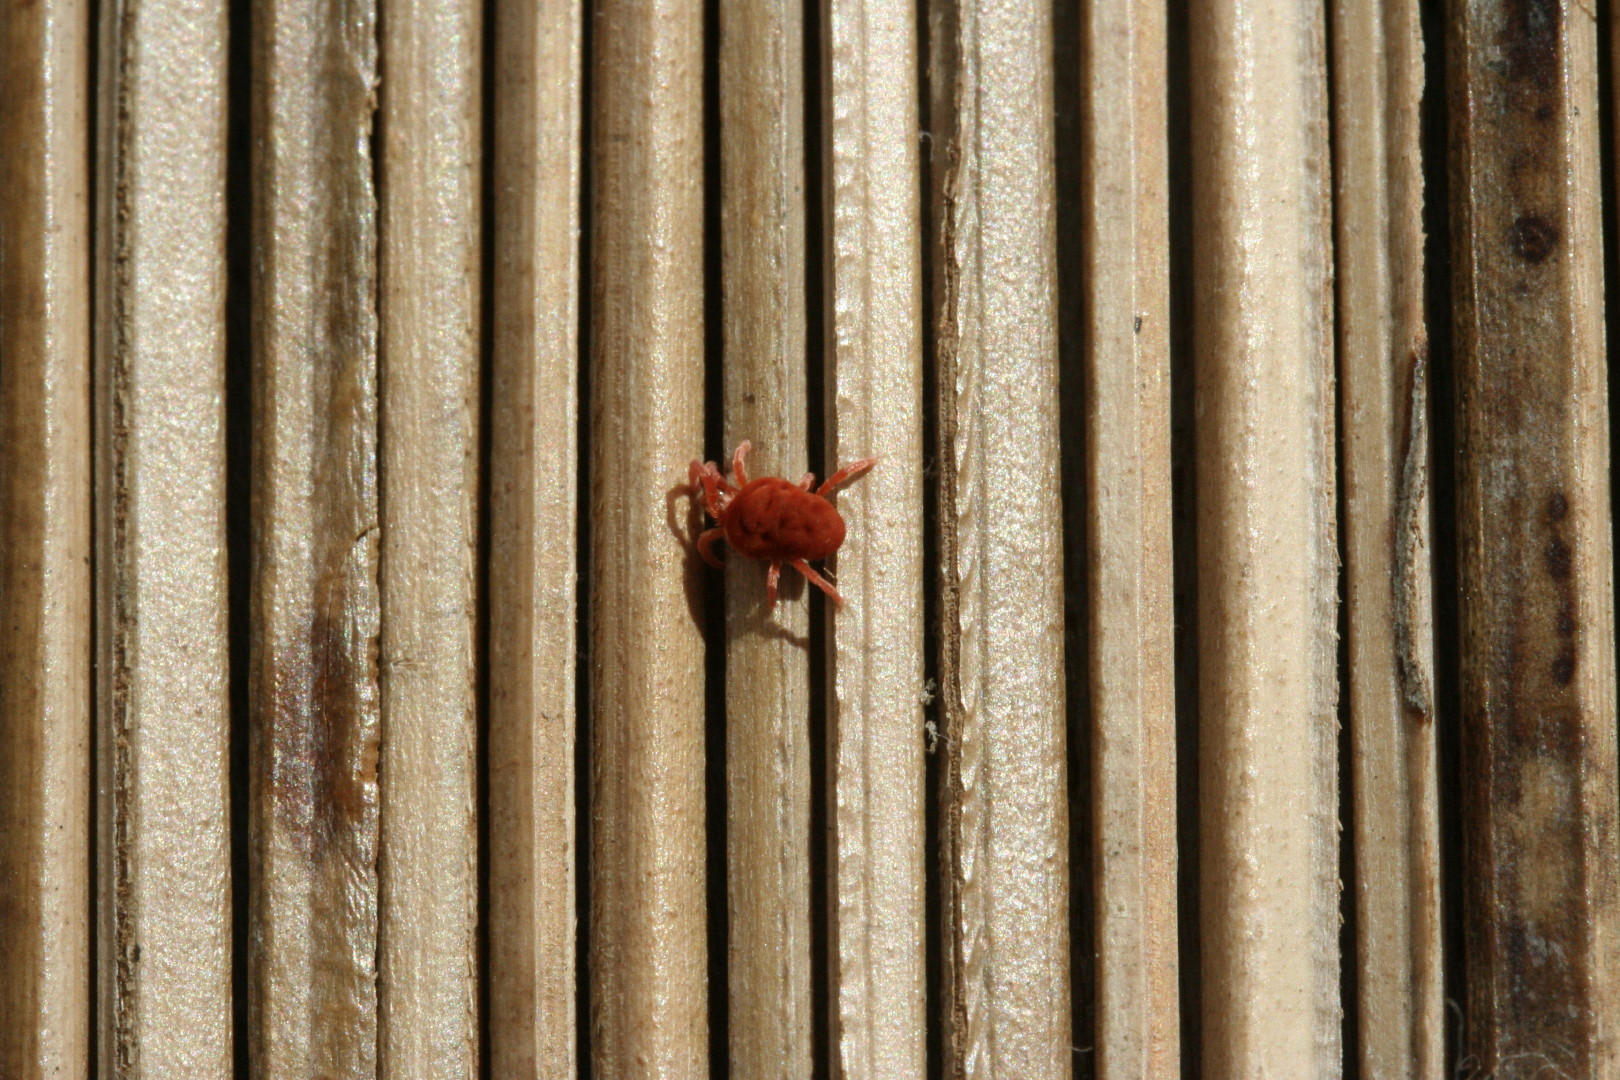 -Eutrombidium rostratus-, long. 2 à 3mm (Trombidiidae)